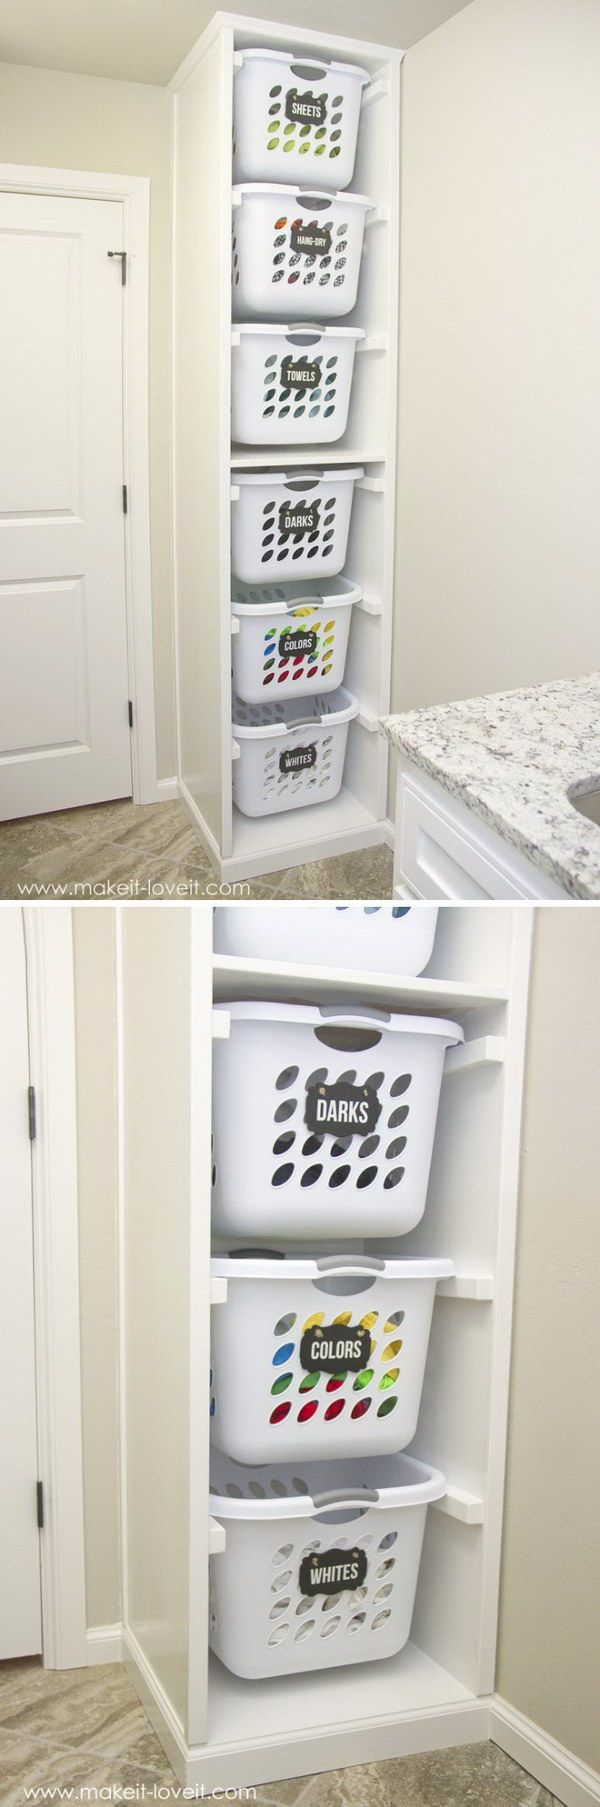 DIY Laundry Basket Organizer.                                                                                                                                                                                 More